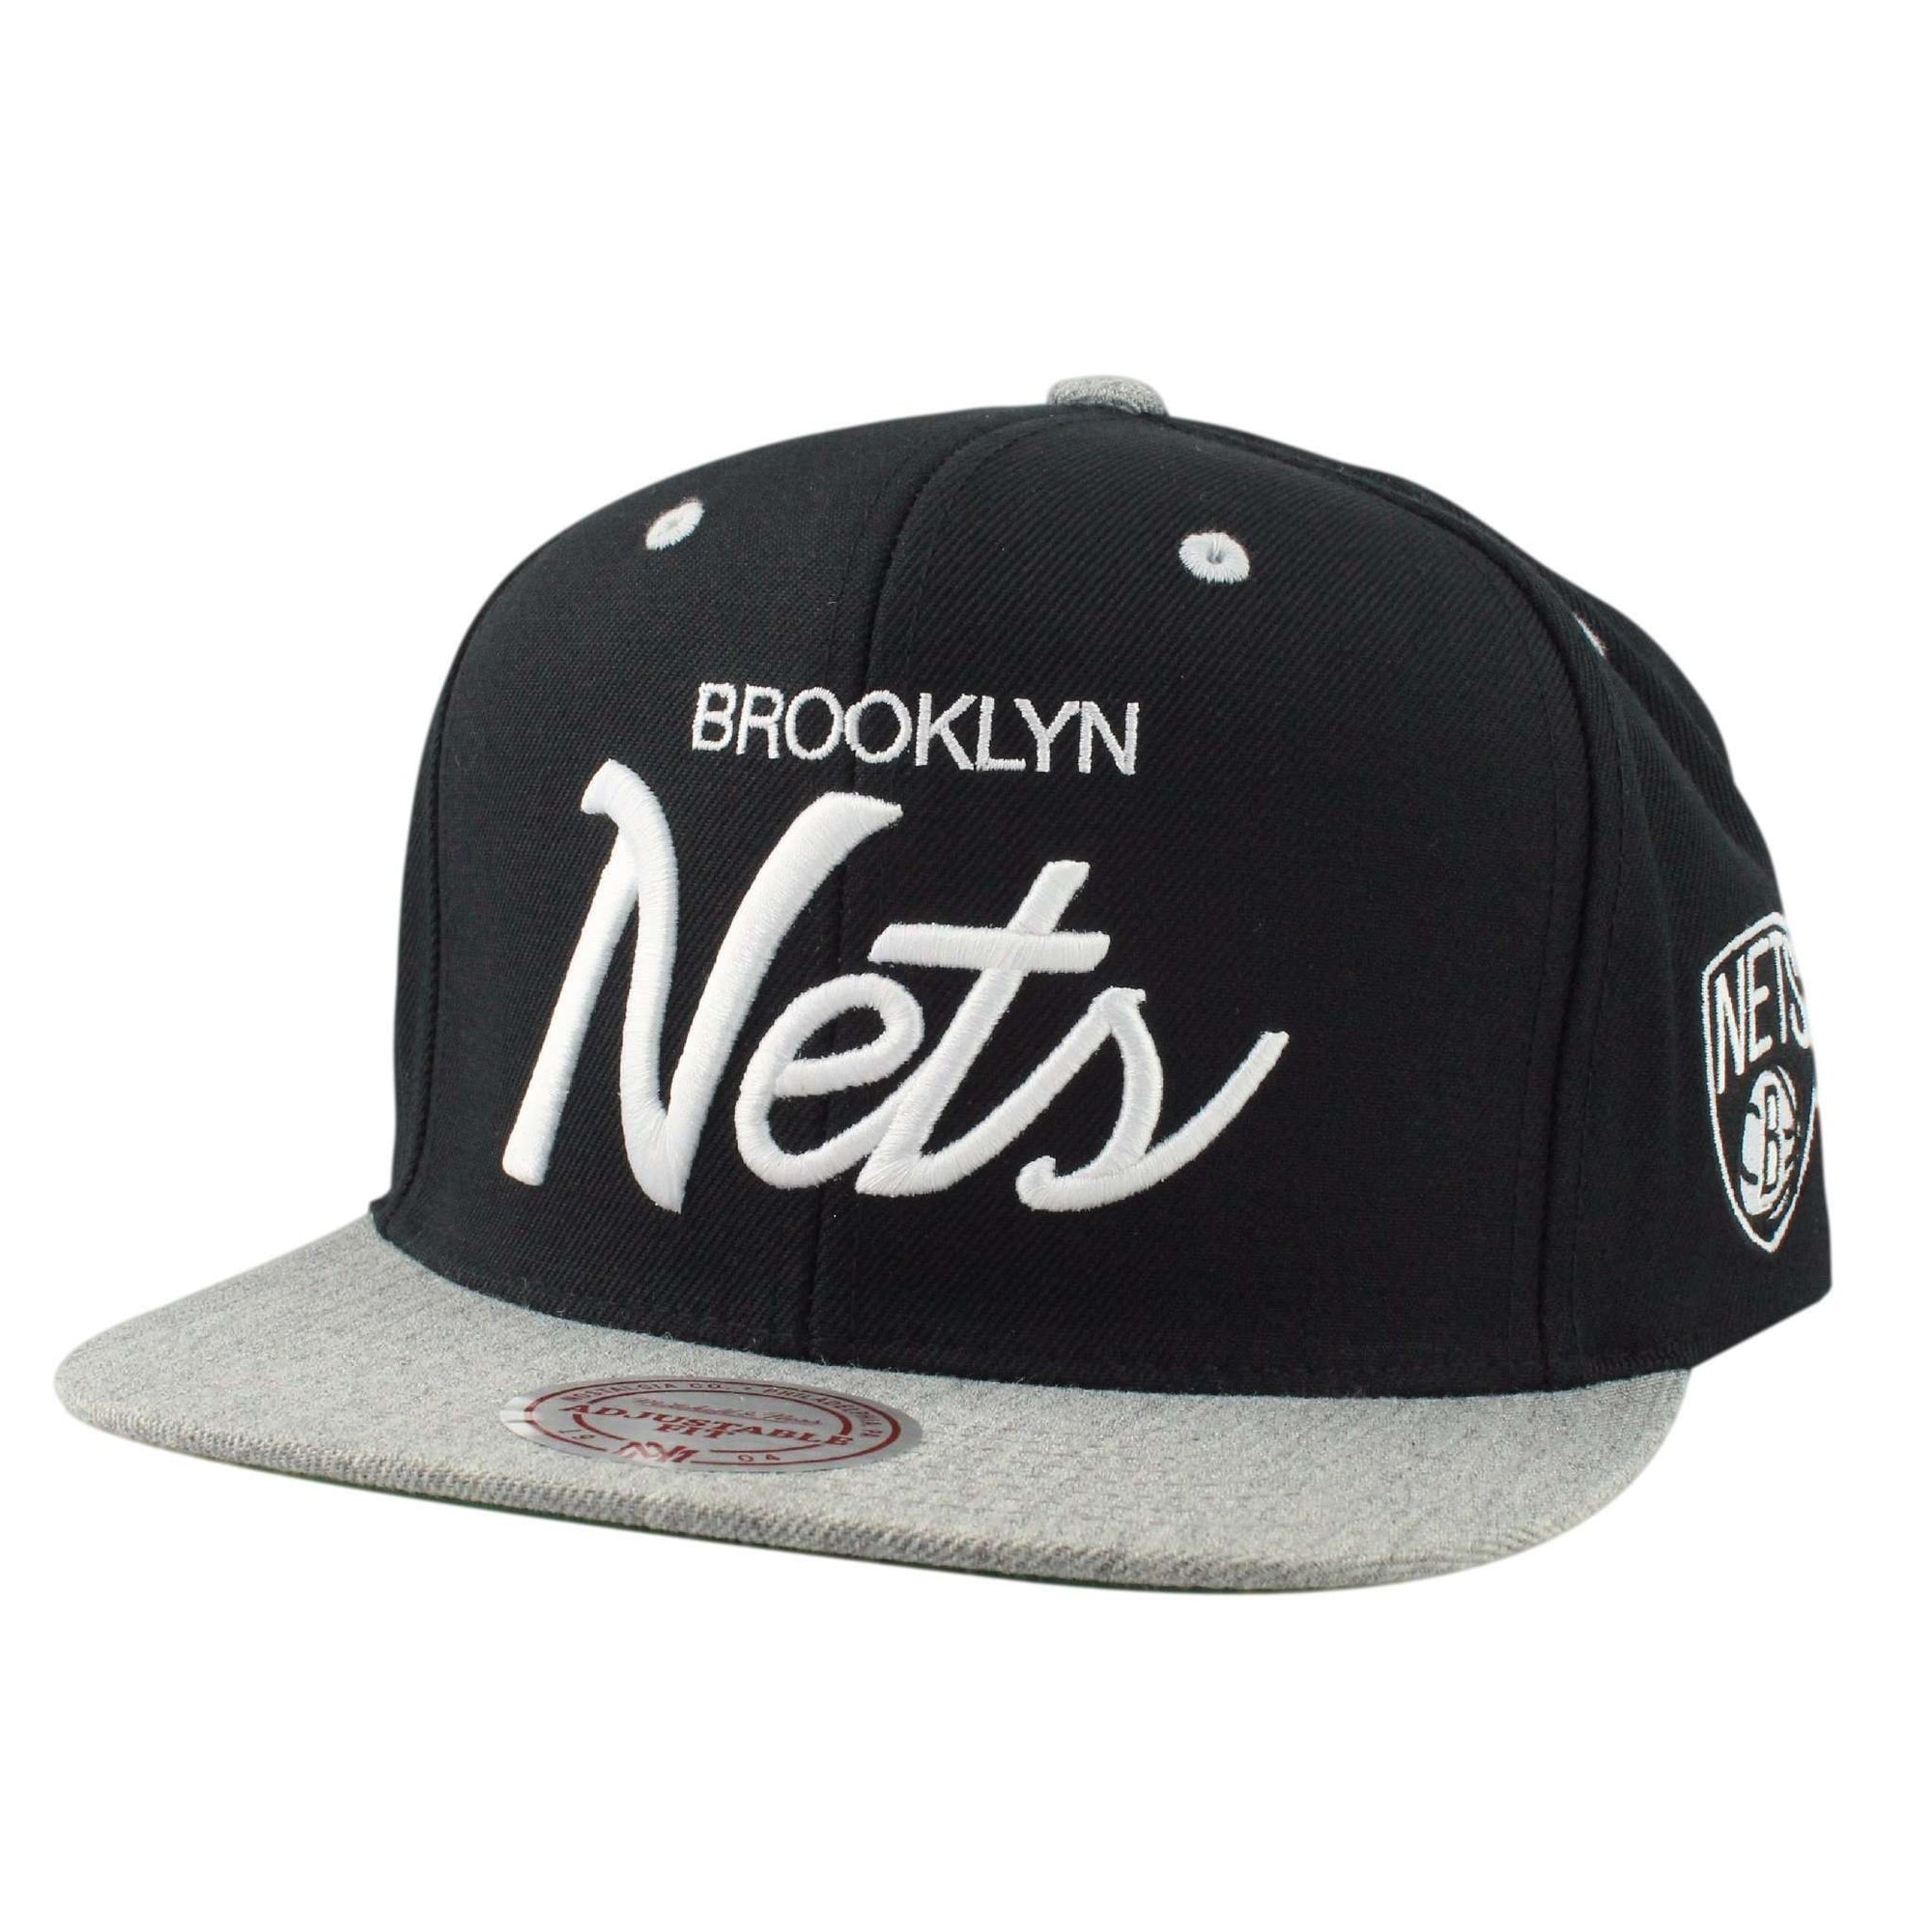 finest selection 36936 426a3 ... best price mitchell and ness brooklyn nets special script black gray  snapback a520d 8cbba ...